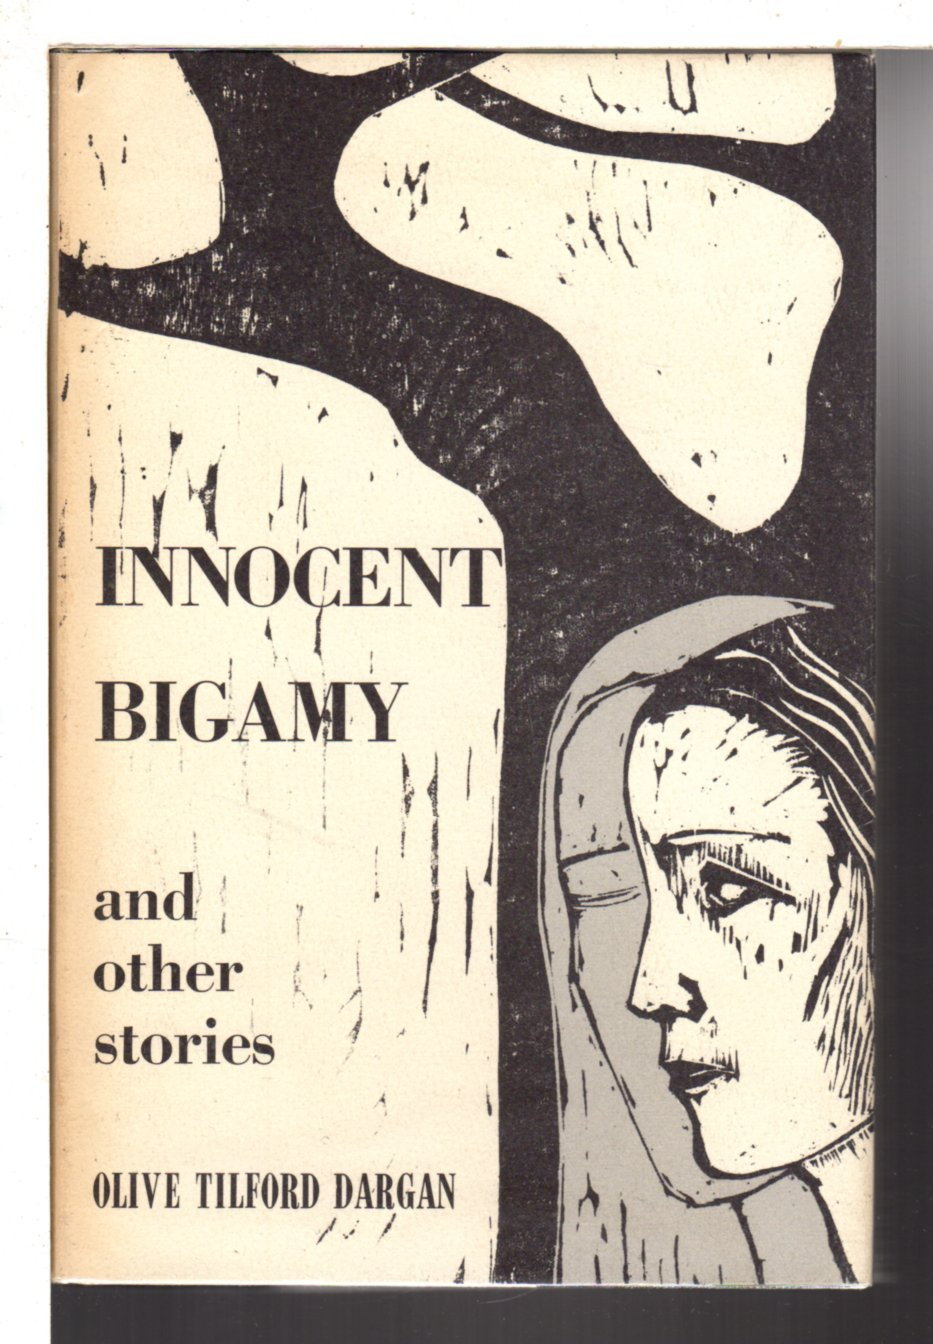 DARGAN, OLIVE TILFORD (1869-1968) - INNOCENT BIGAMY and Other Stories.